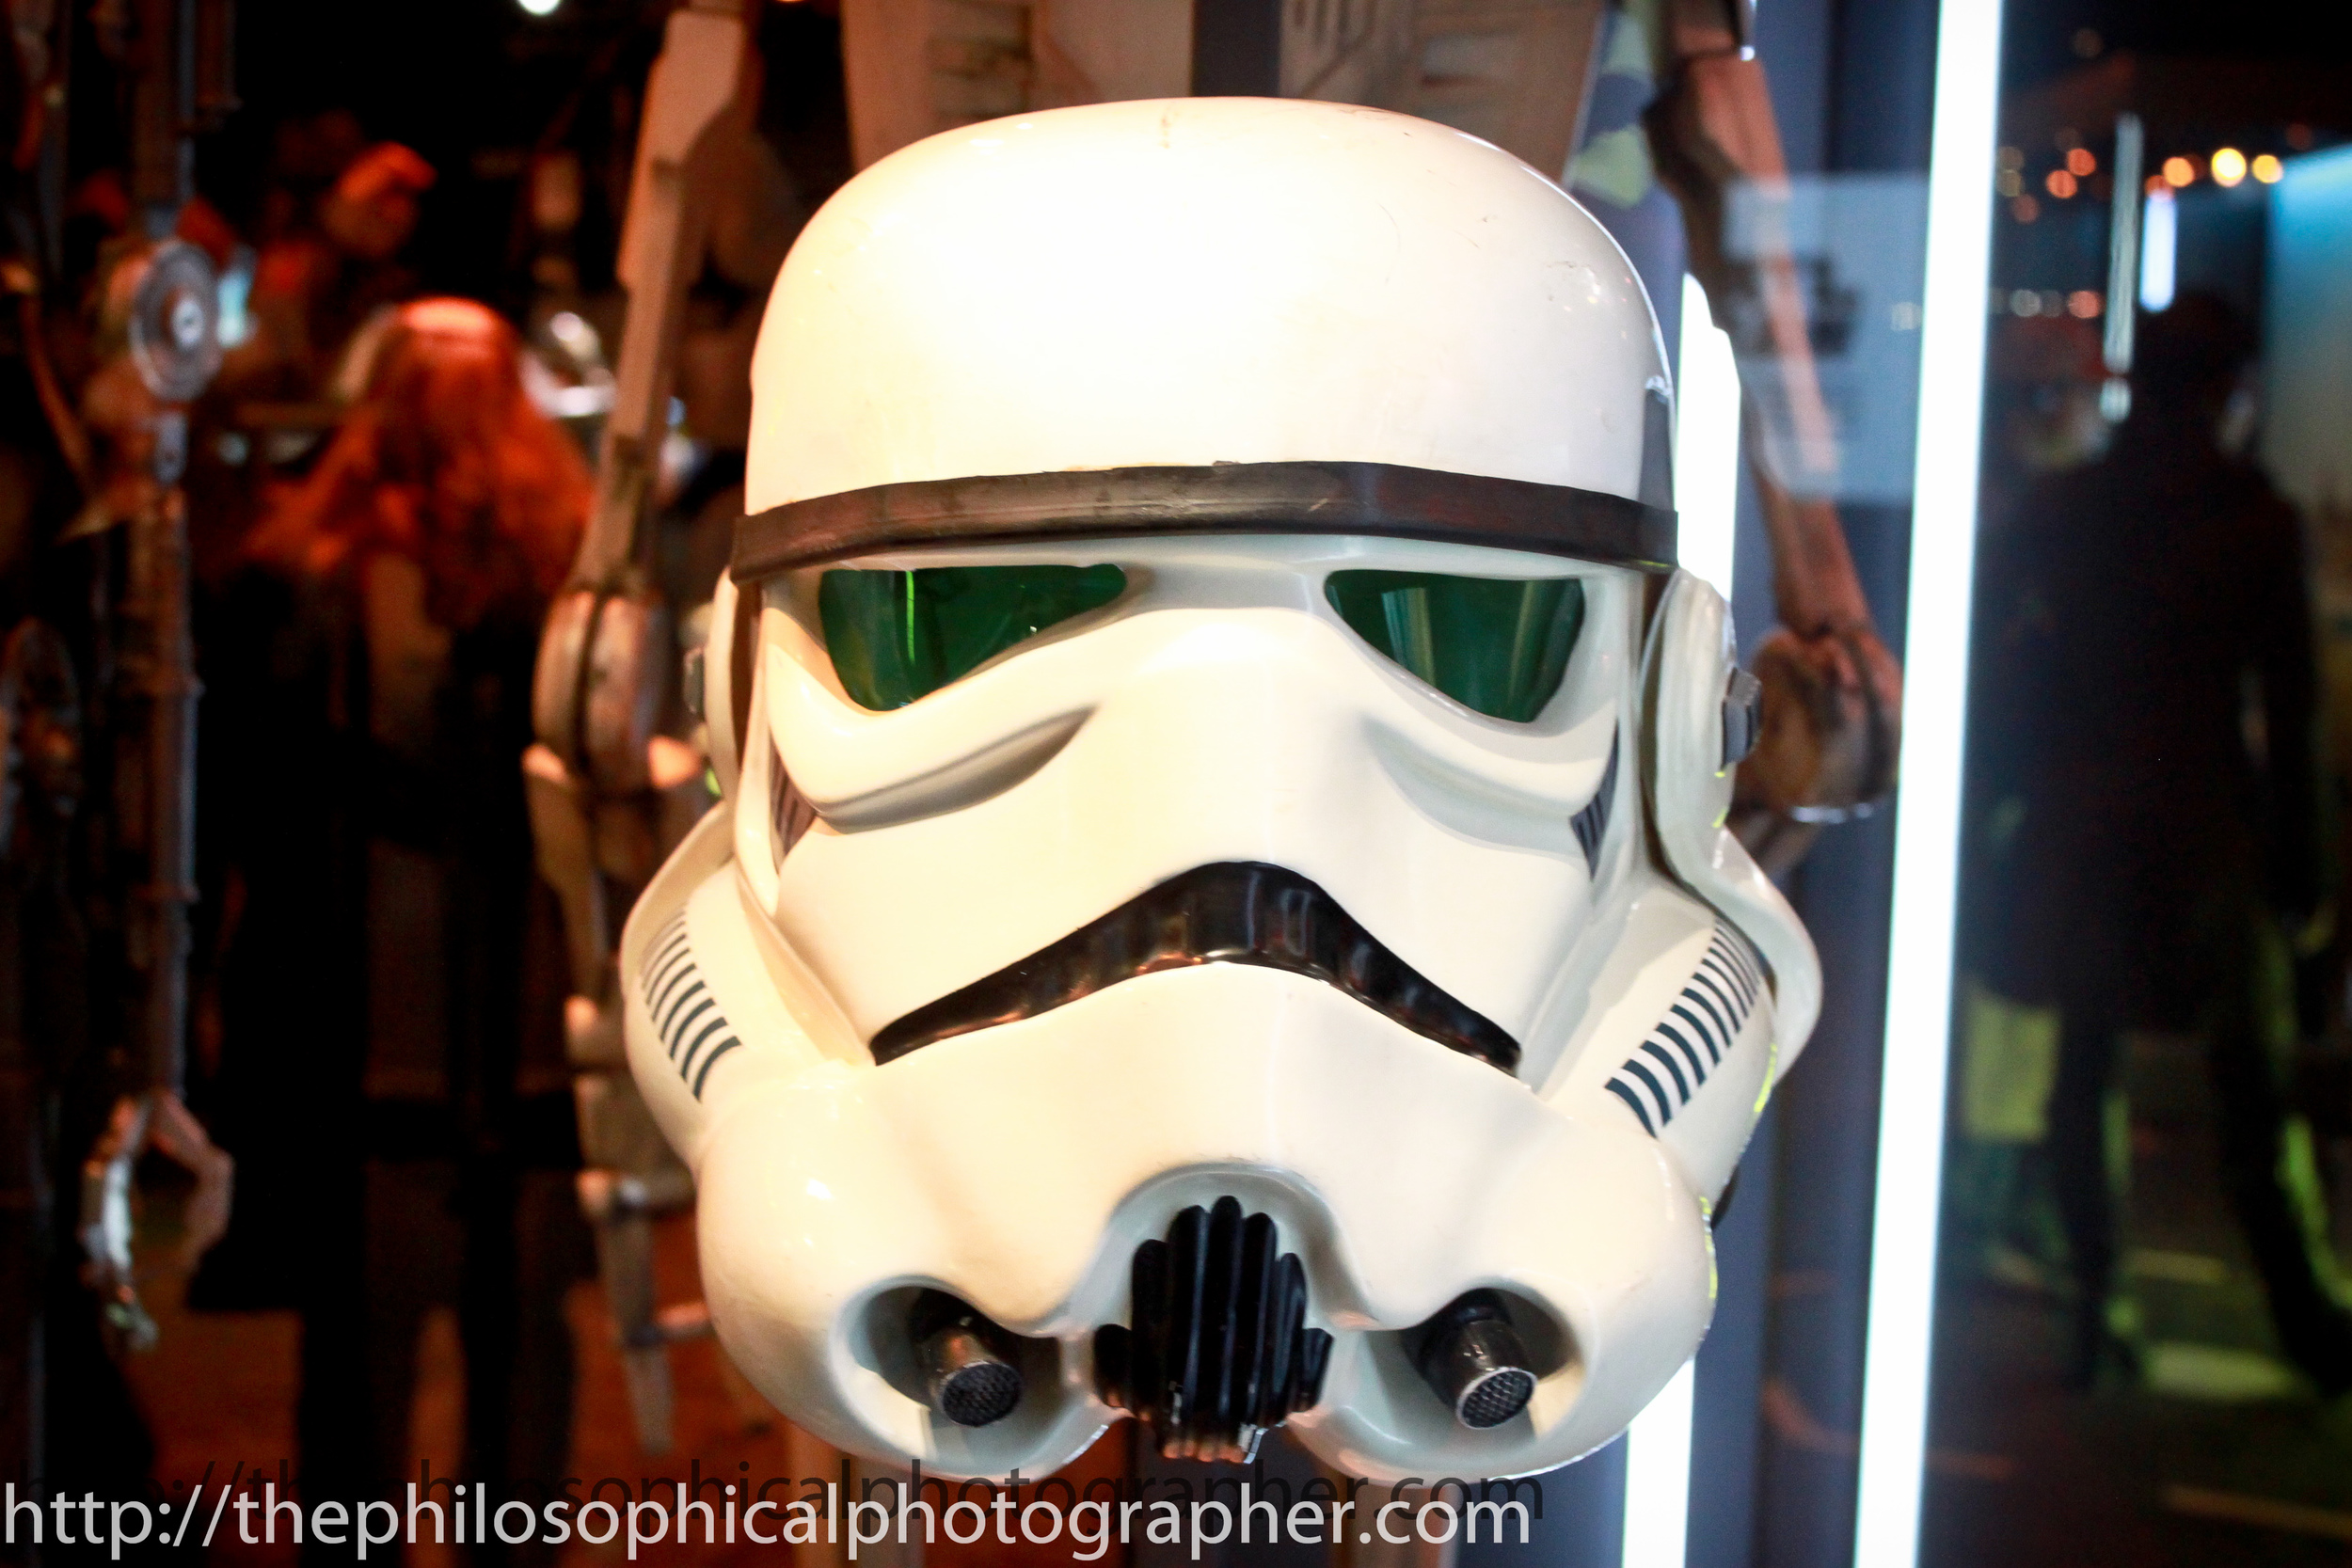 Storm Trooper helmet. Almost looked comical when up close, but don't tell anyone I said so!